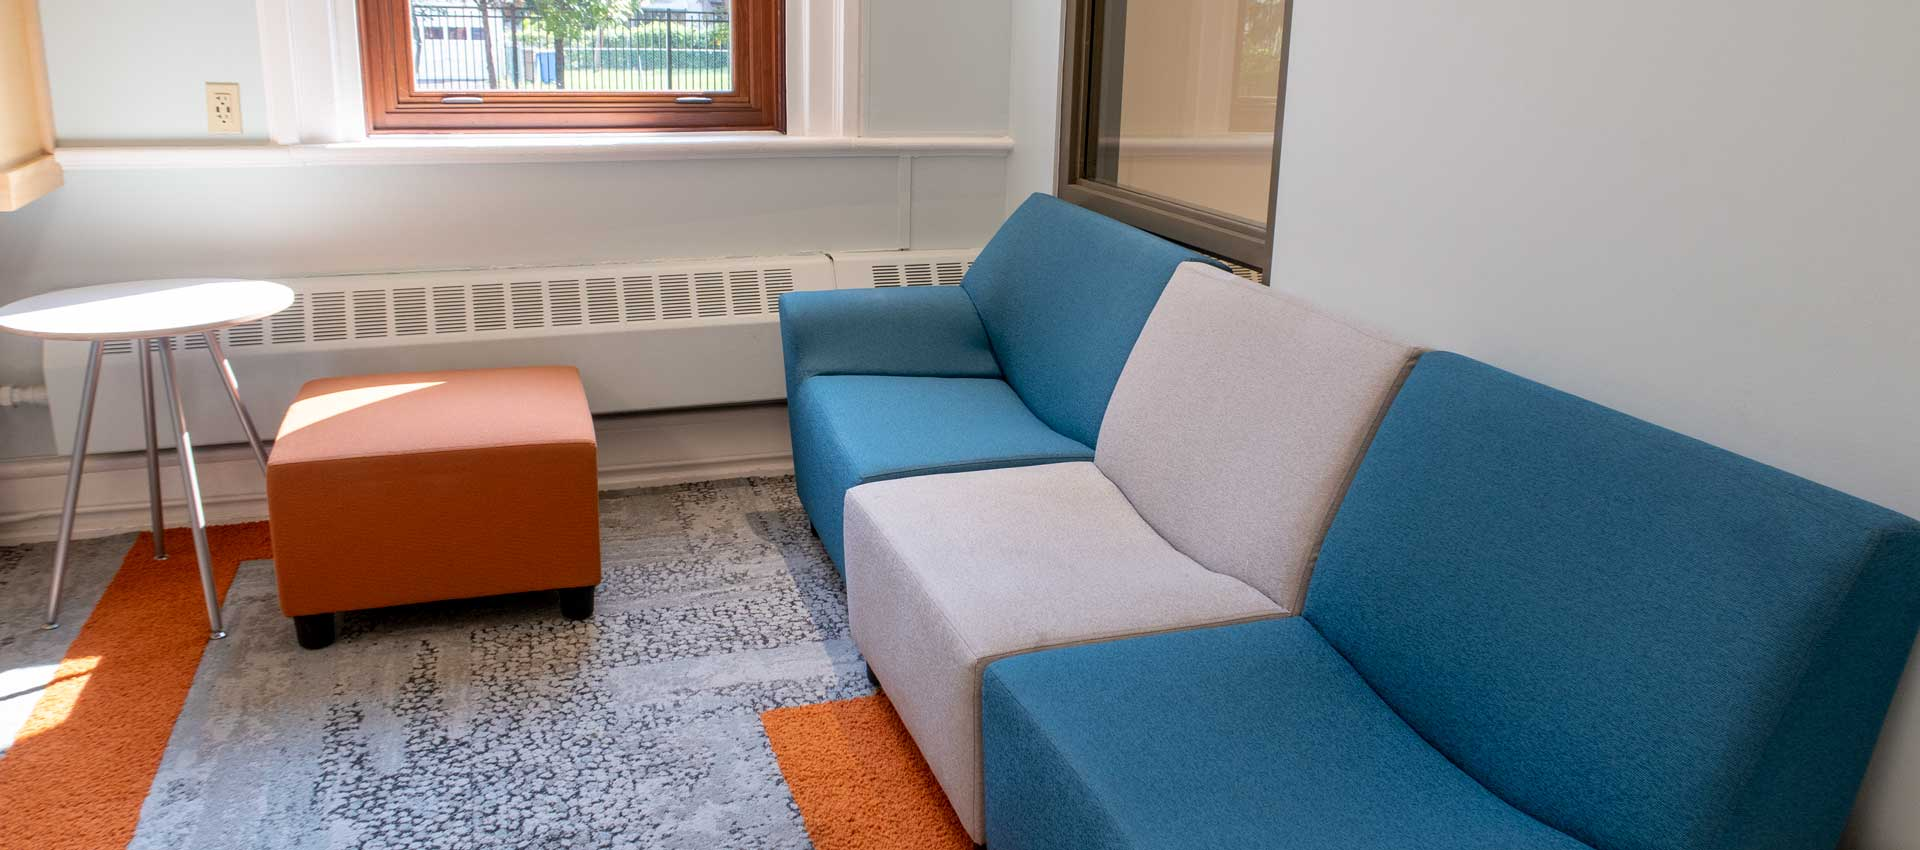 couch and ottoman with side table in library teen room